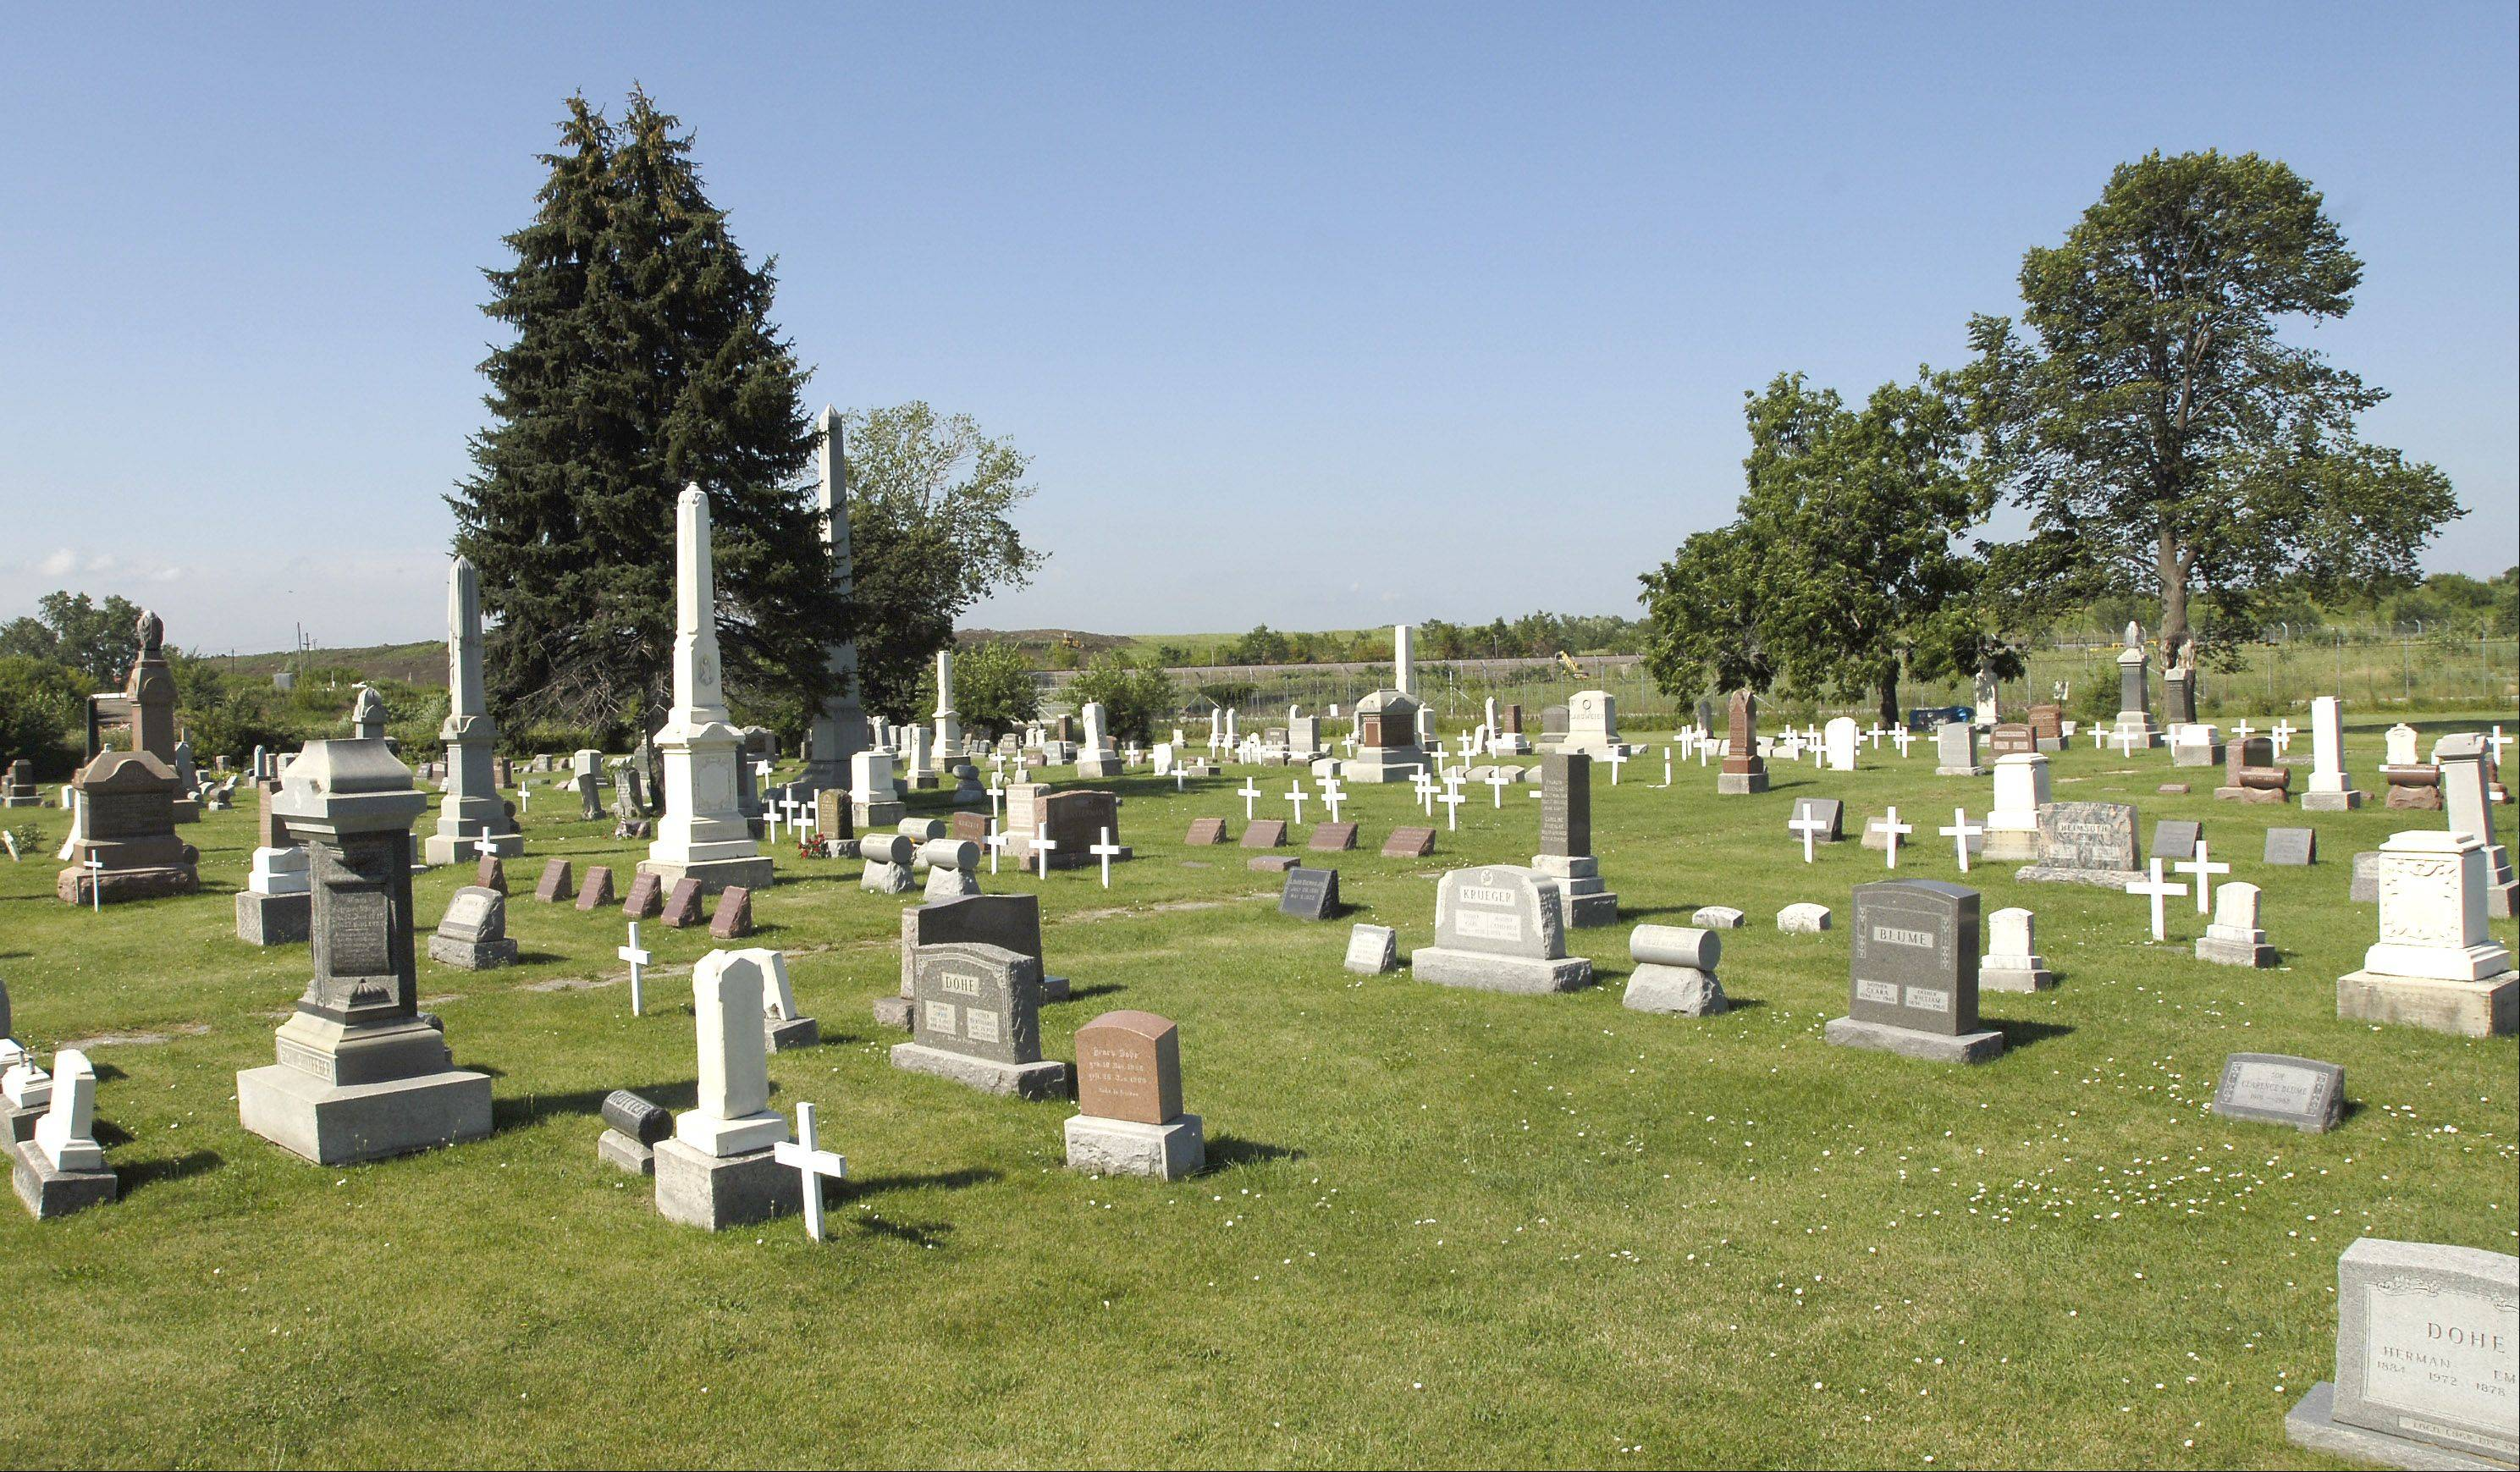 A Bensenville church that once operated the St. Johannes Cemetery near O�Hare International Airport was awarded $1.3 million in a settlement with the city of Chicago, which acquired the 5-acre site in 2010 as part of eminent domain proceedings.